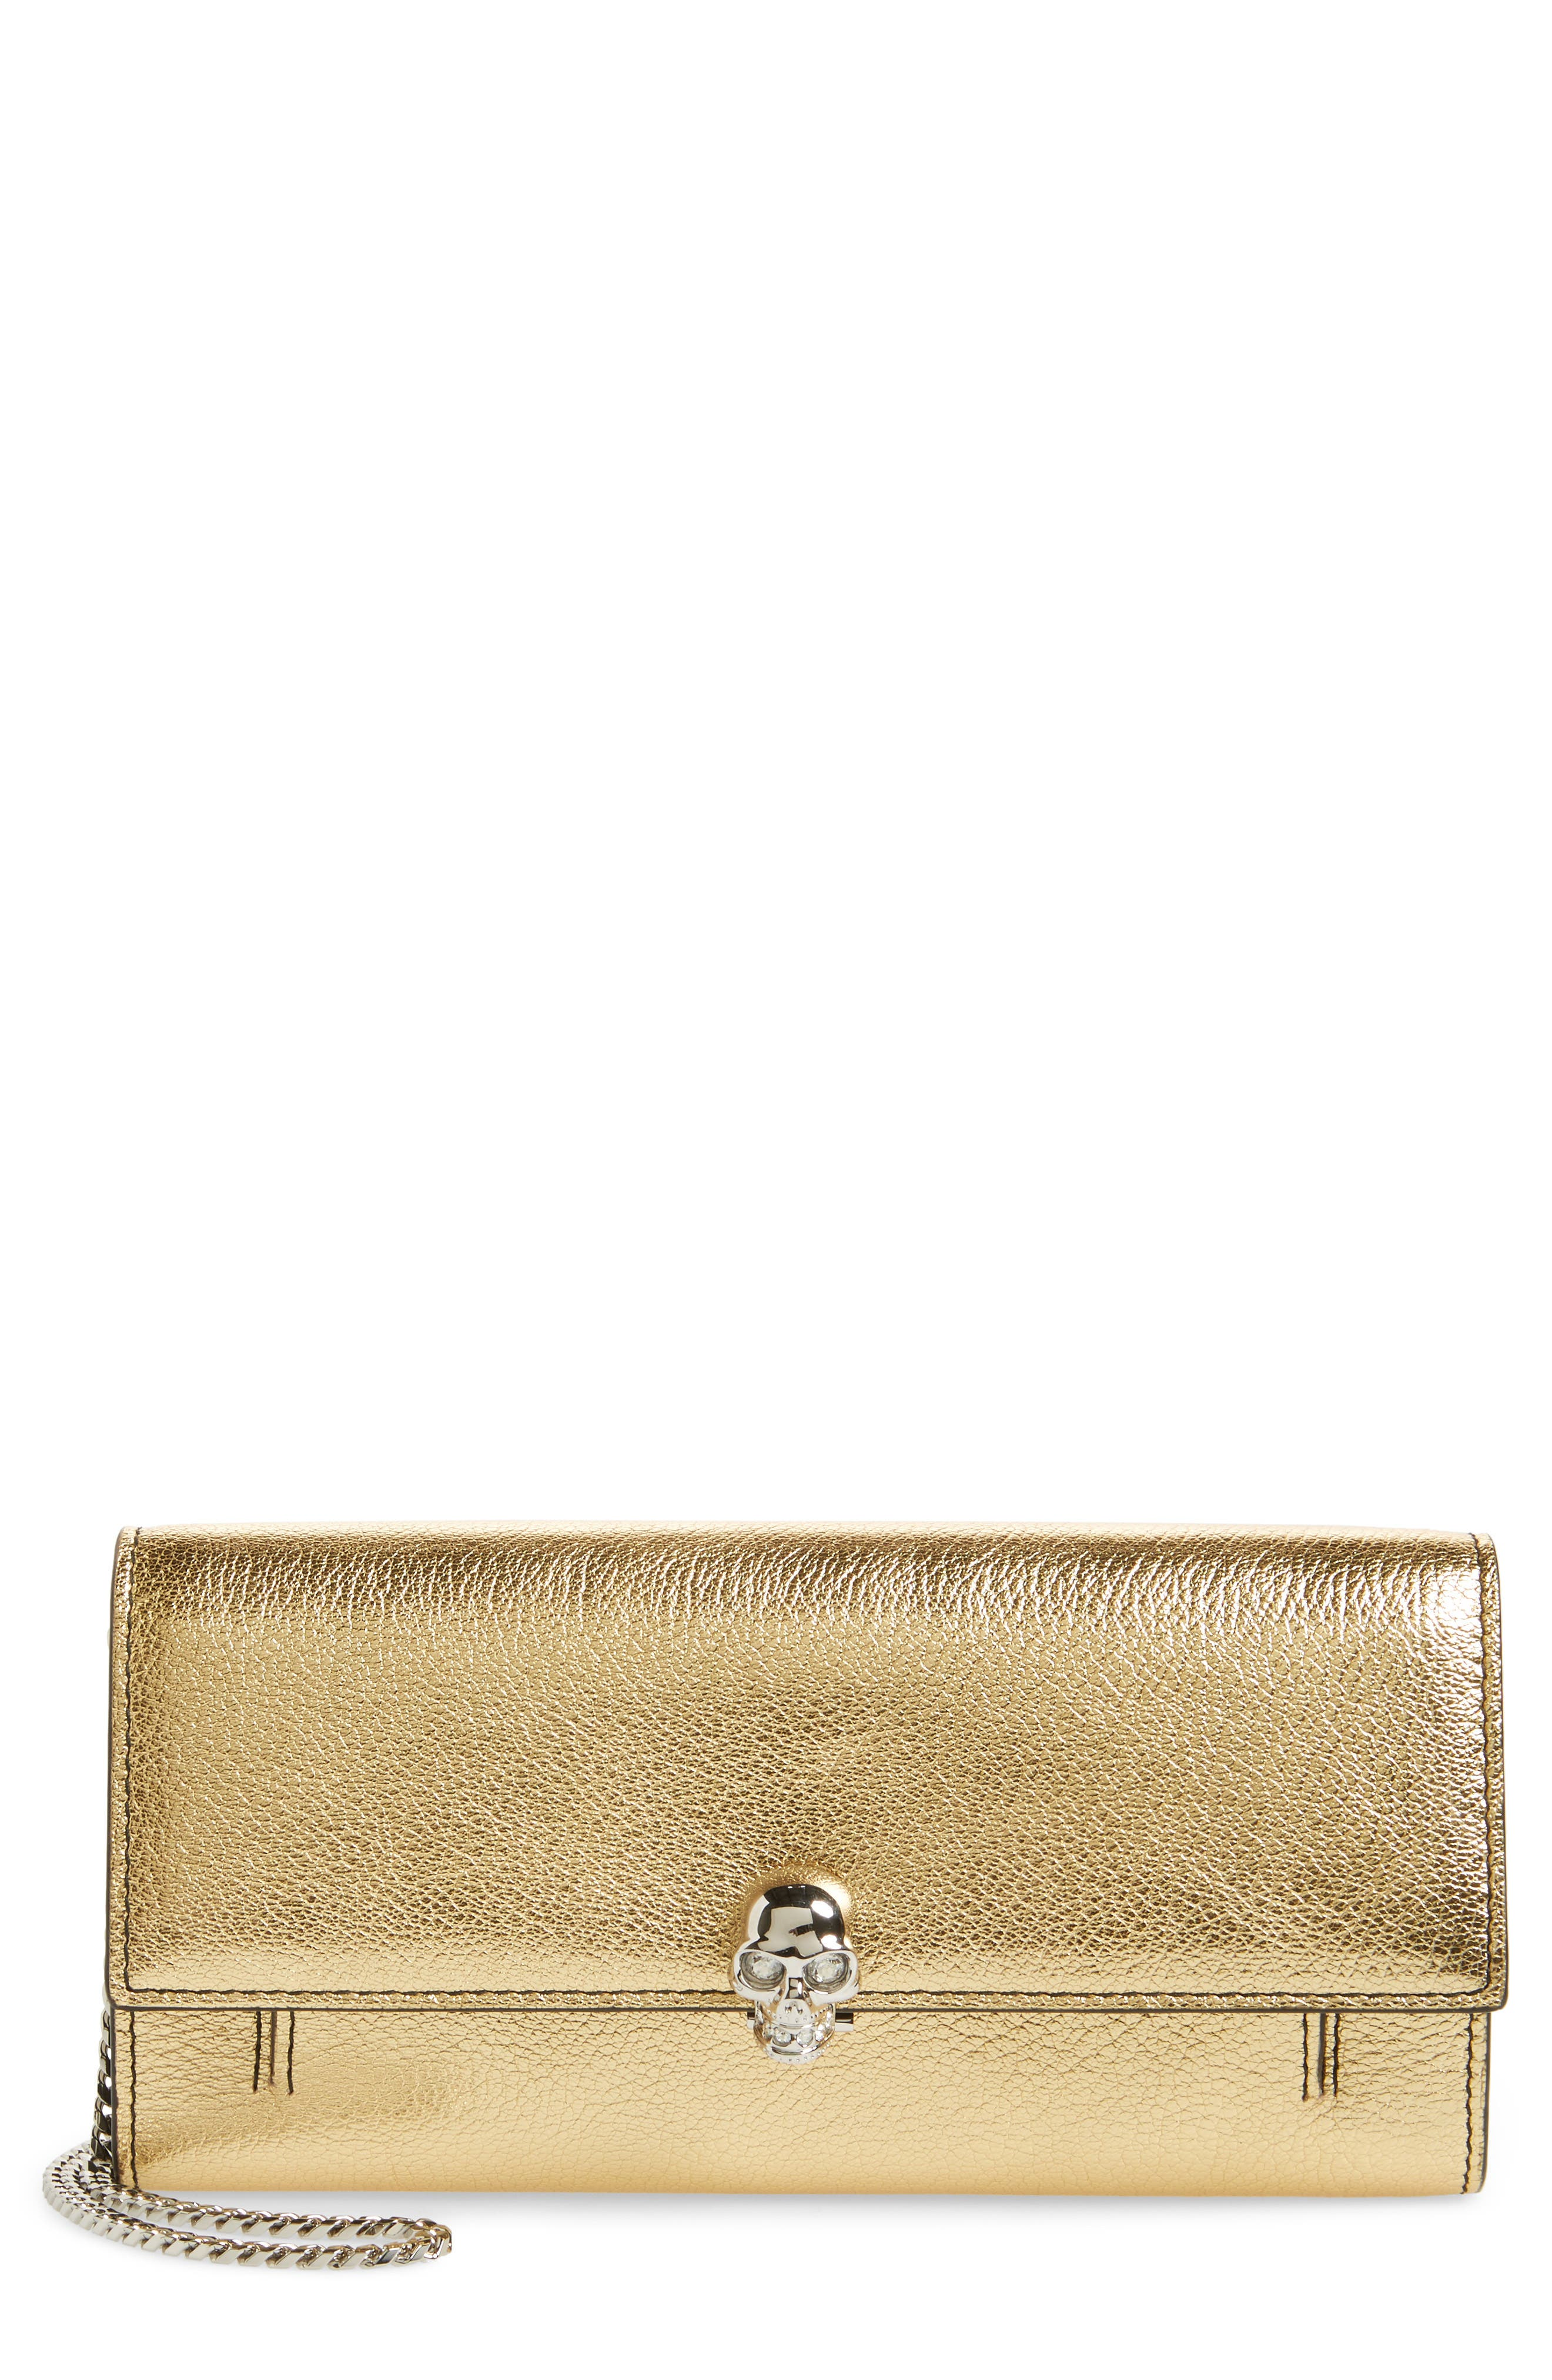 Alexander McQueen Metallic Leather Wallet on a Chain